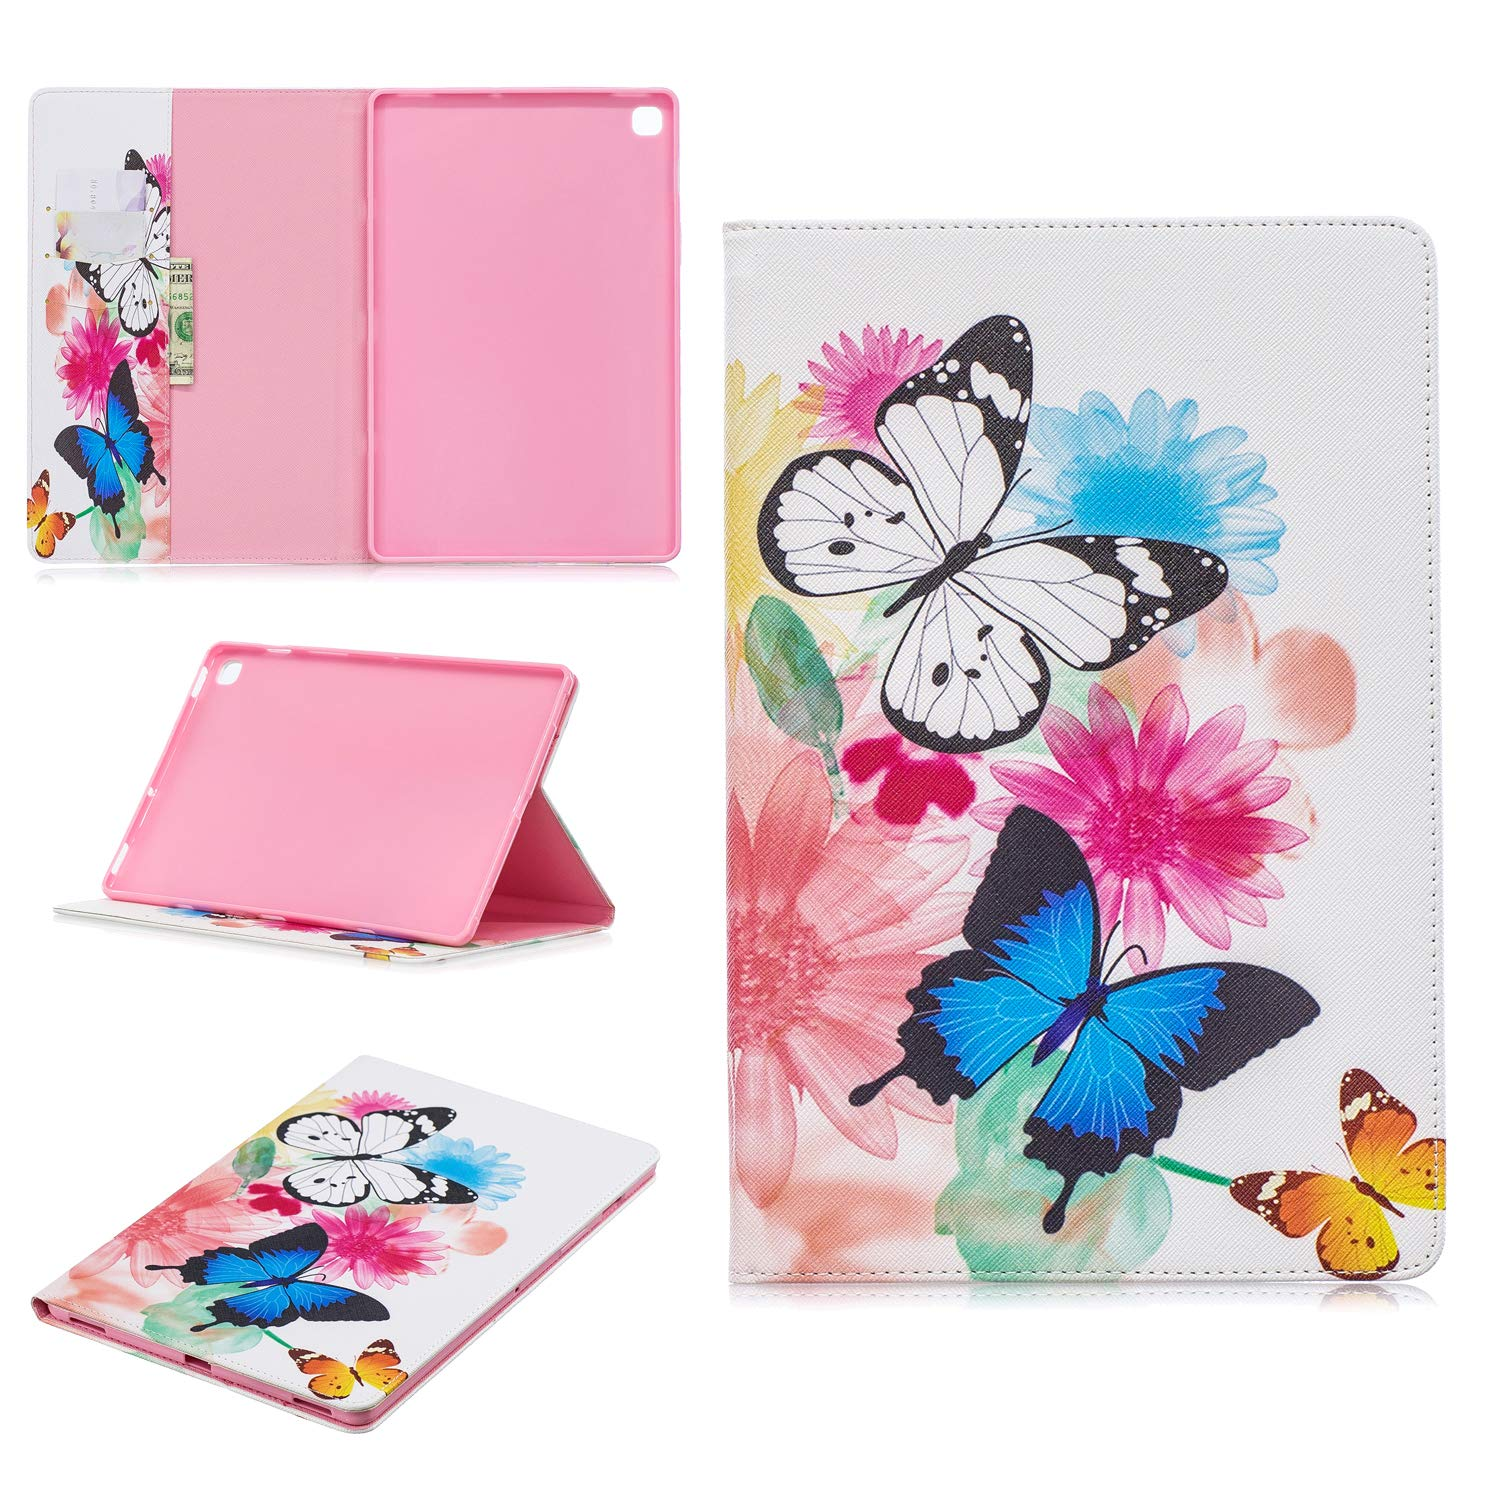 Cfrau Wallet Case with Black Stylus for Samsung Galaxy Tab S5e 10.5'' 2019 (SM-T720),Colorful Print Smart Magnetic Flip PU Leather Card Slots Shockproof Soft Rubber Stand Tablet Case,Colorful Butterfly by Cfrau